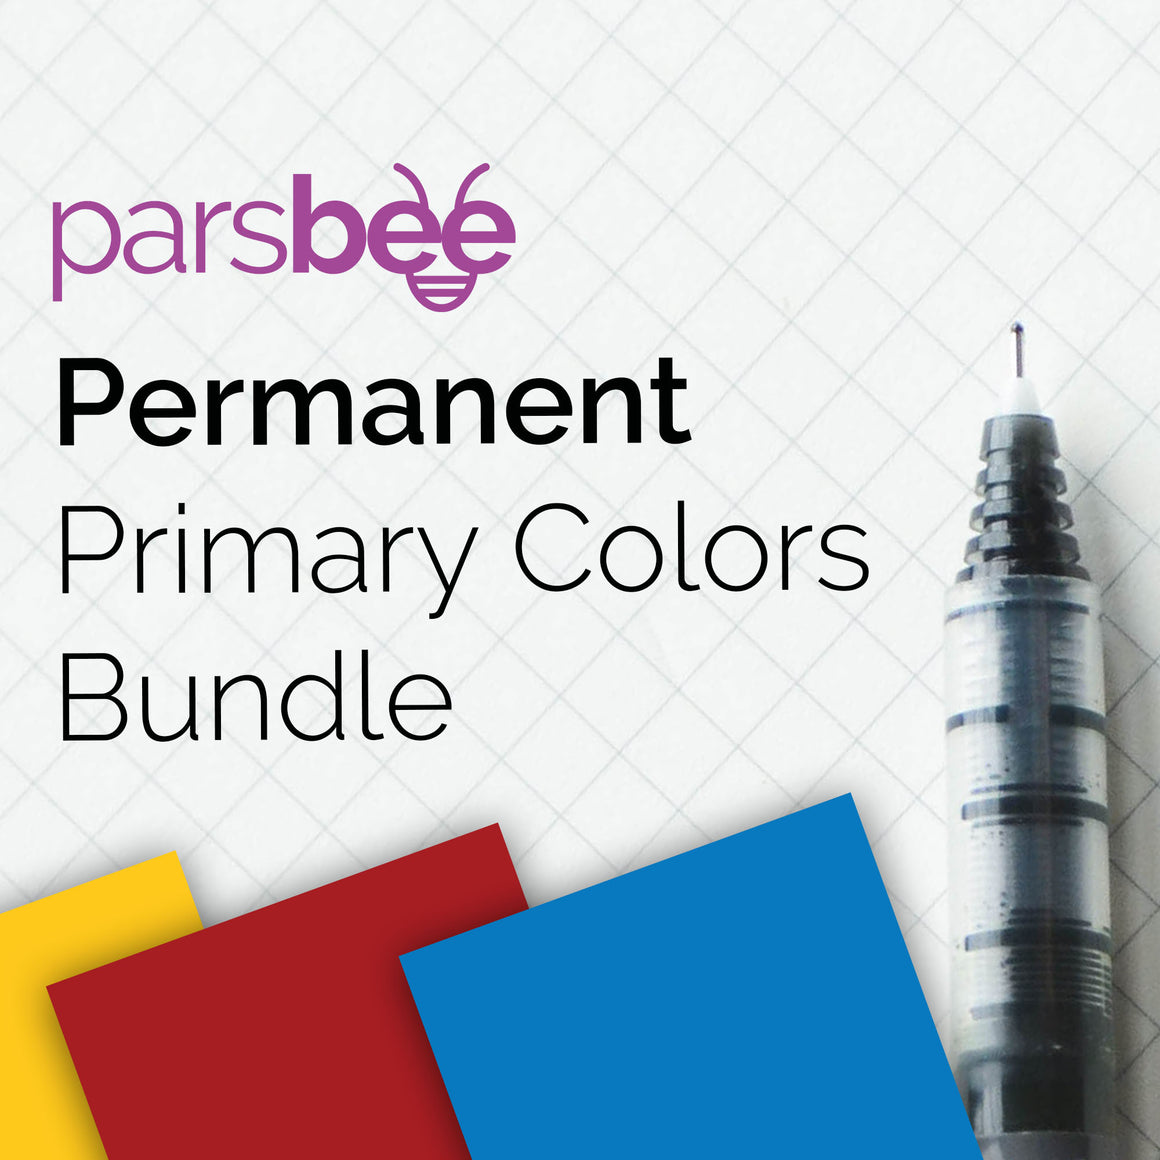 Parsbee Permanent Gloss Primary Colors Bundle